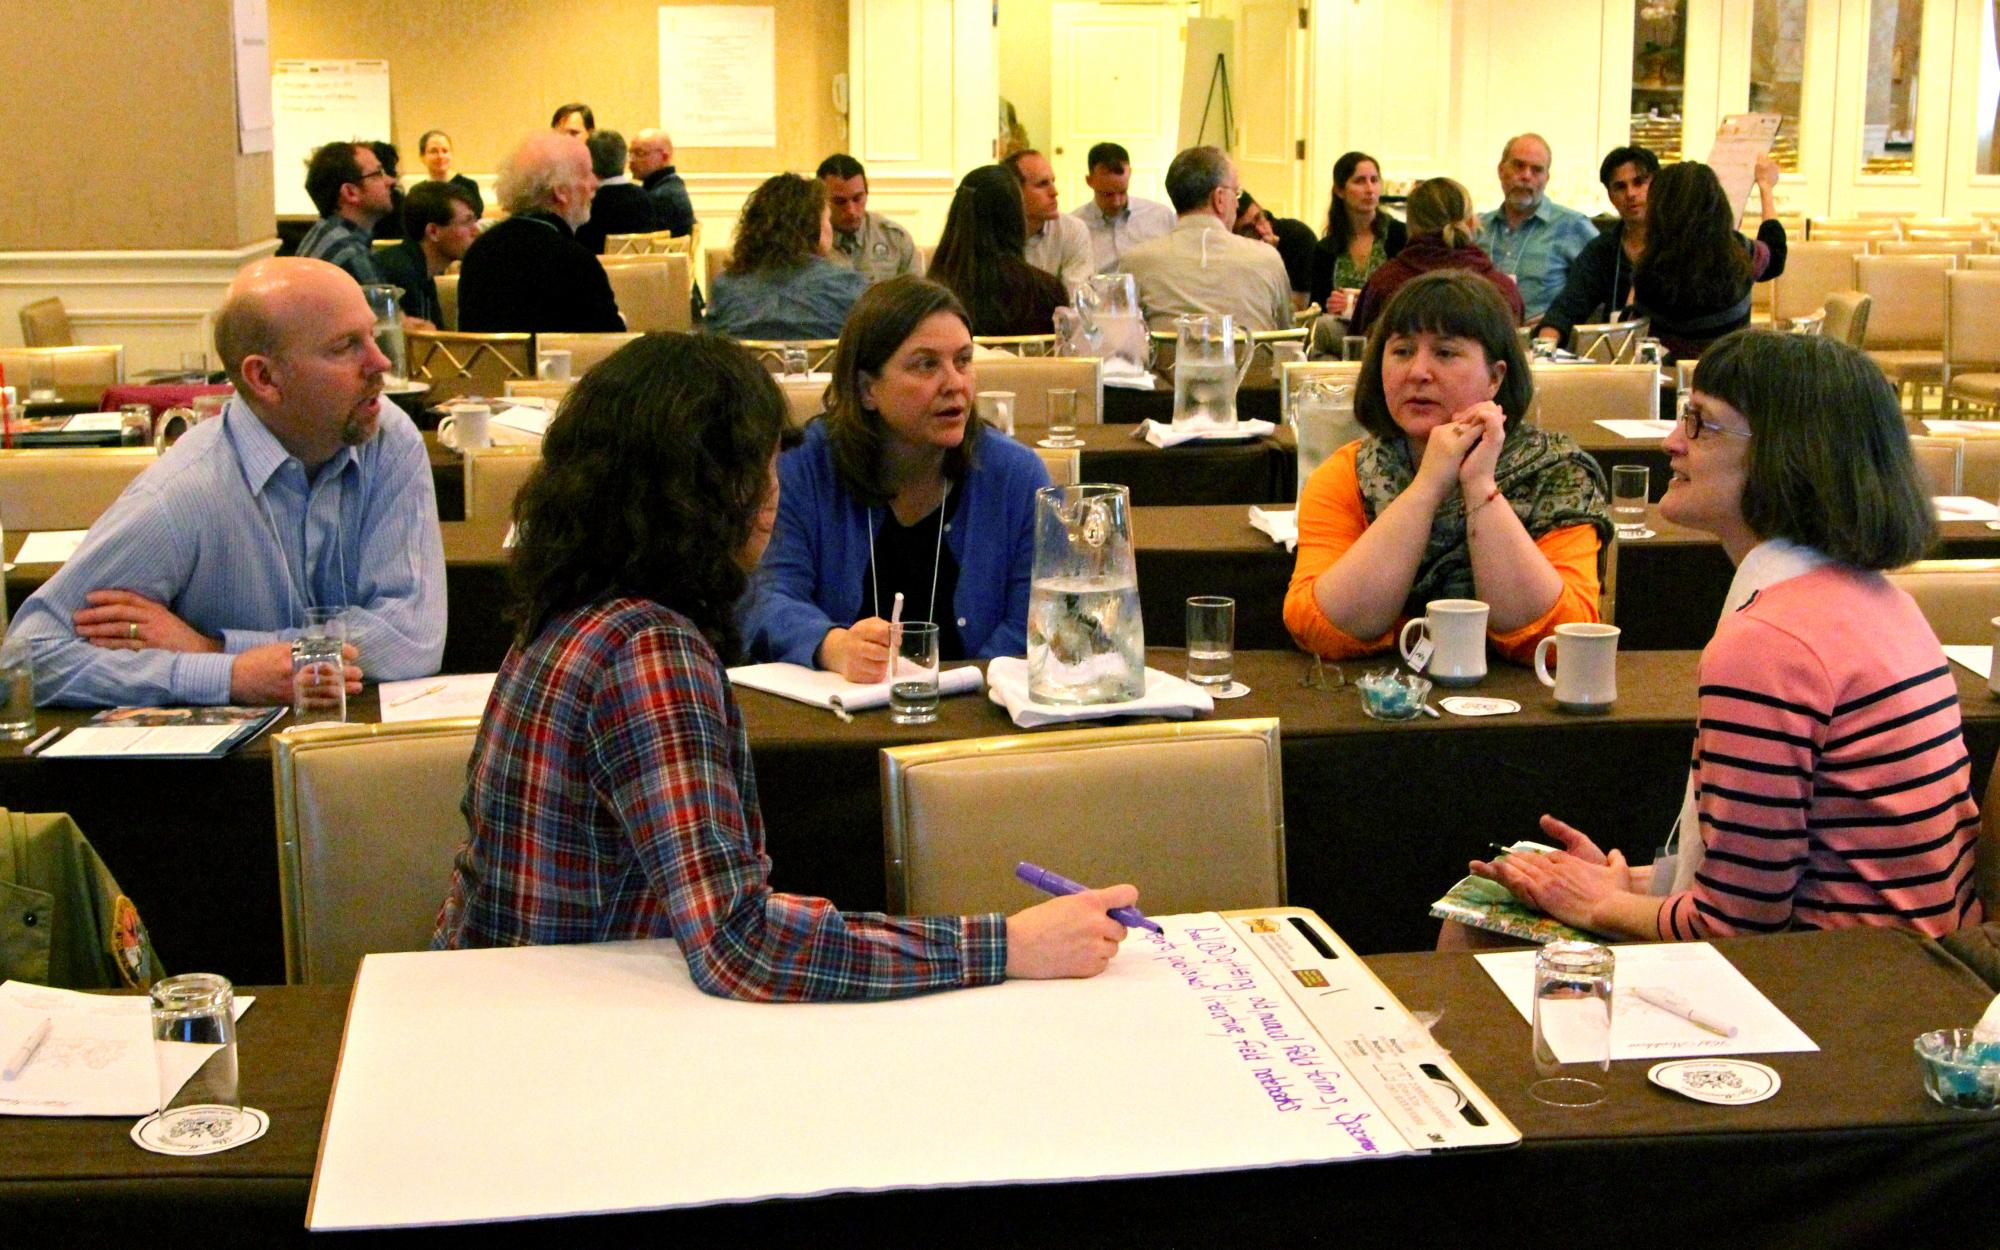 NatureServe Network members and collaborators devoted a full day of brainstorming and deliberation over citizen science at Biodiversity Without Boundaries 2014.